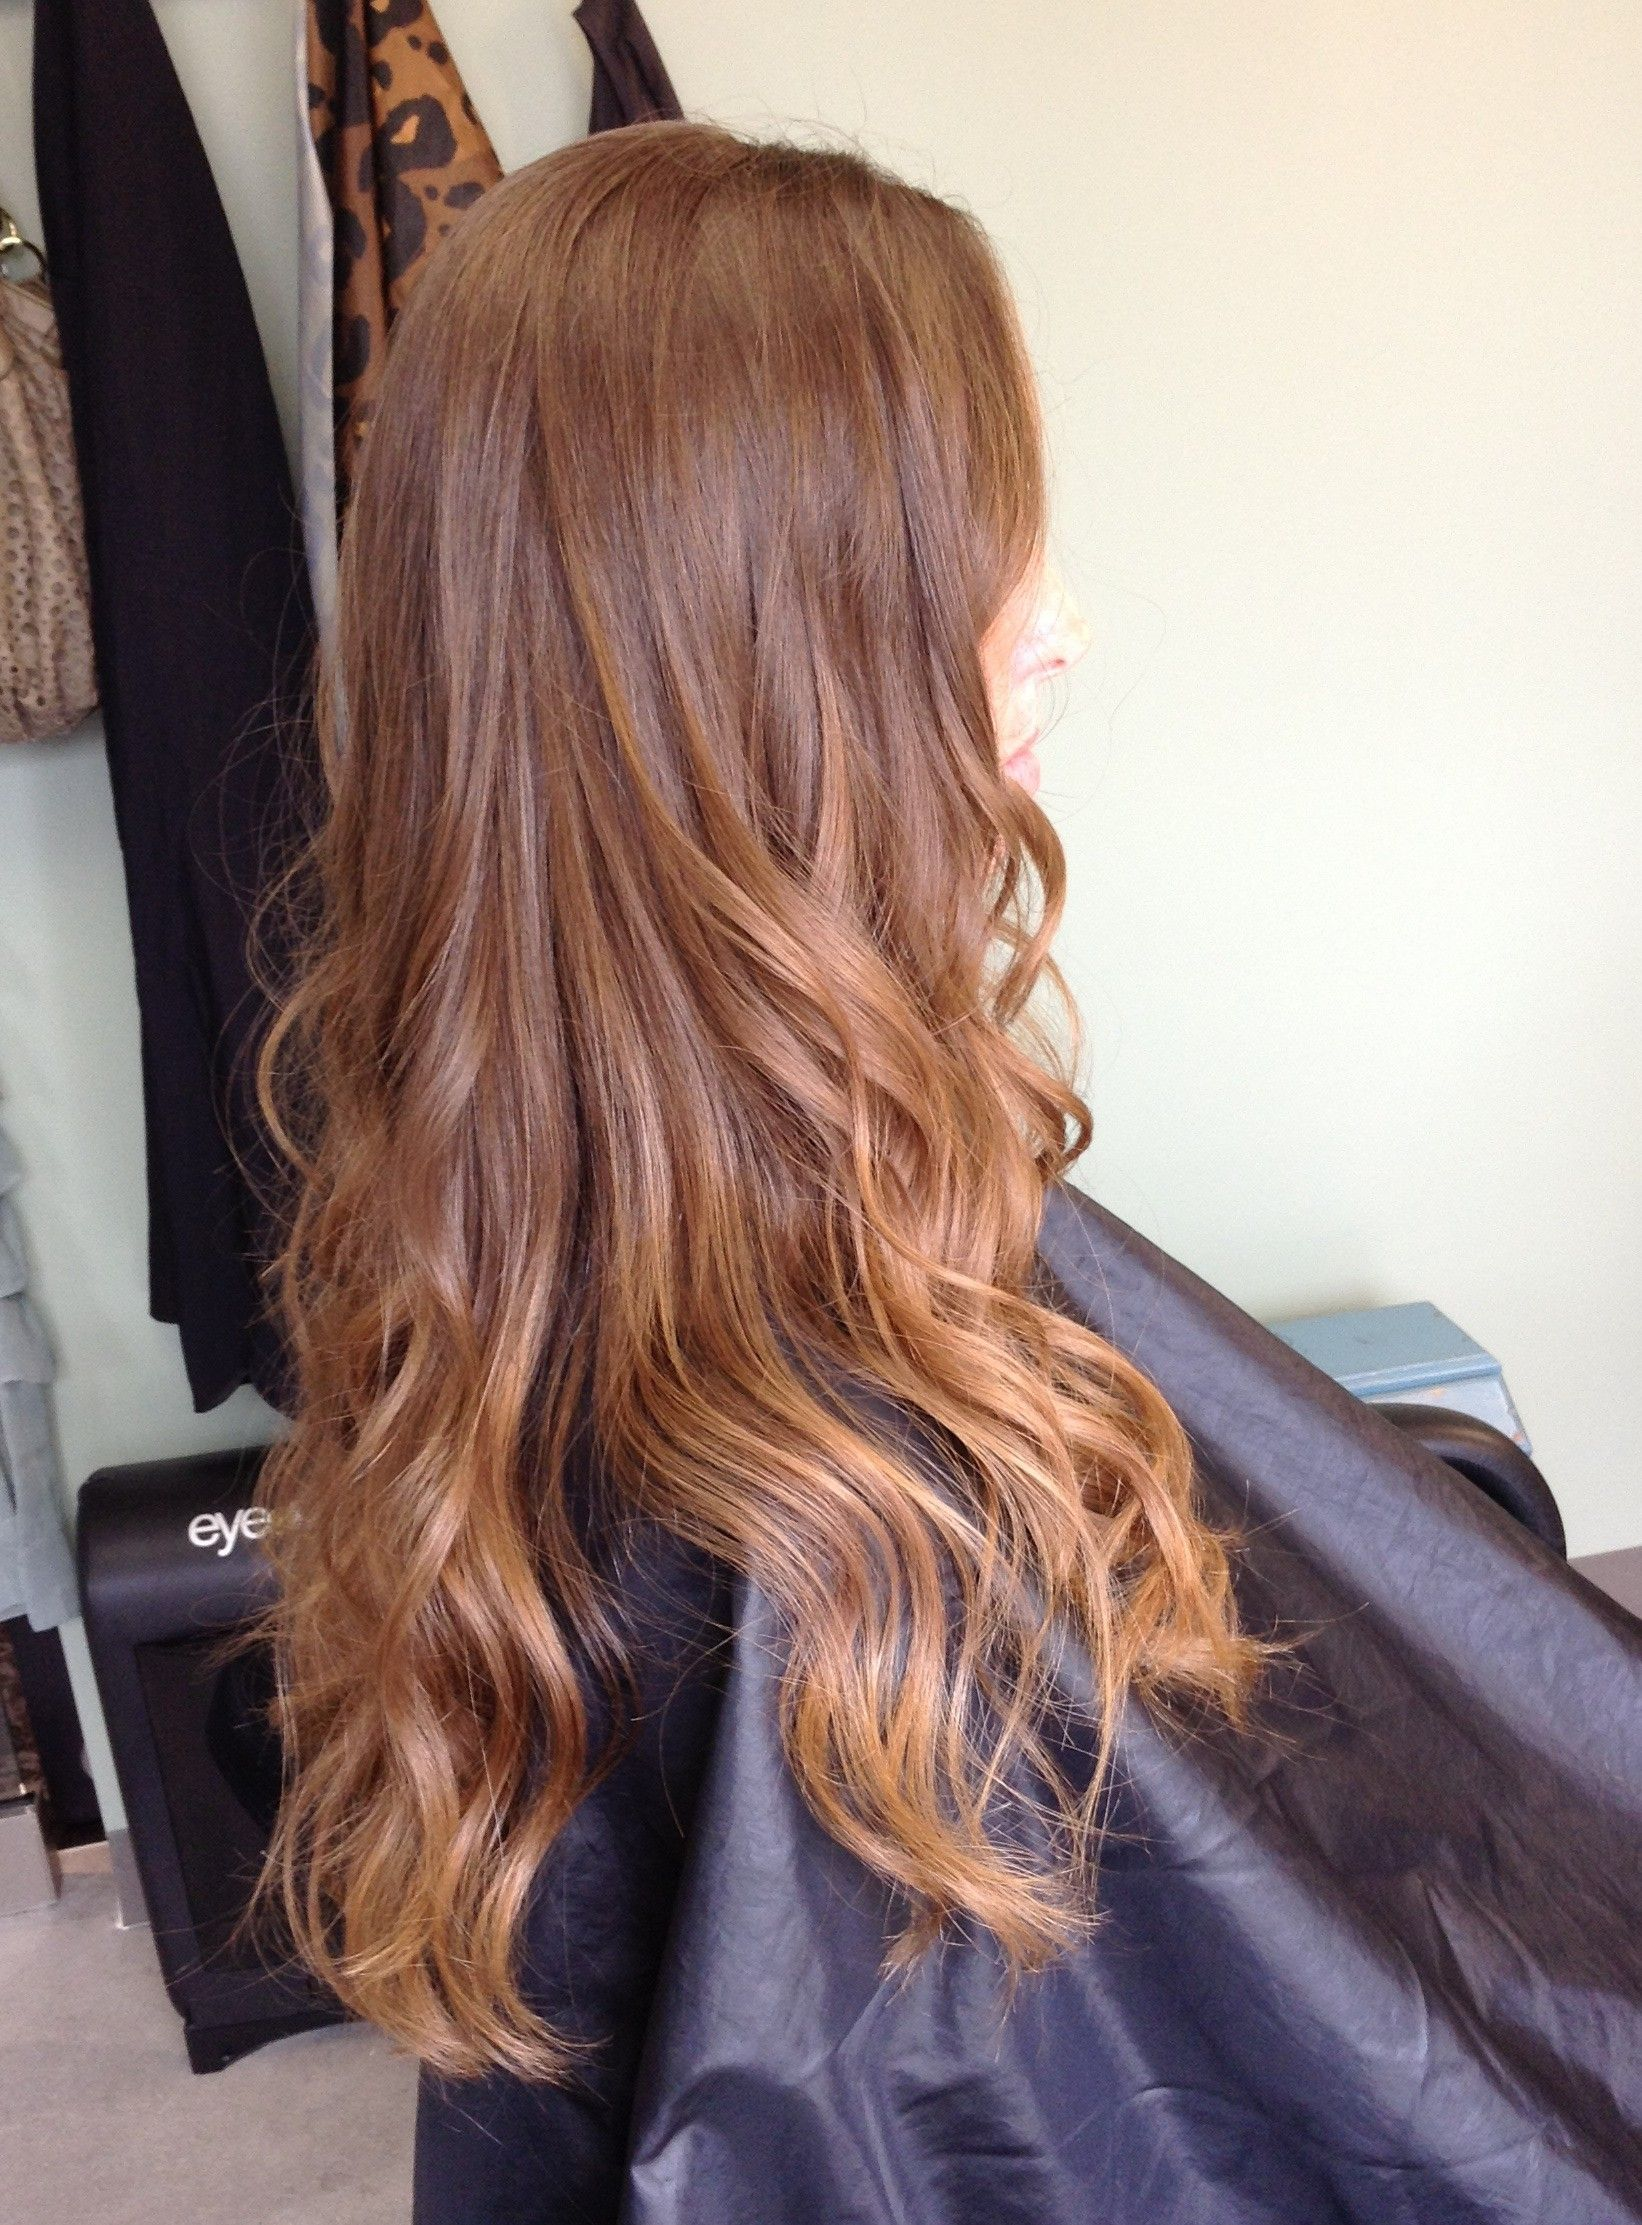 Color Melting A Chic New Way To Color Hair Hair Coloring Ombre